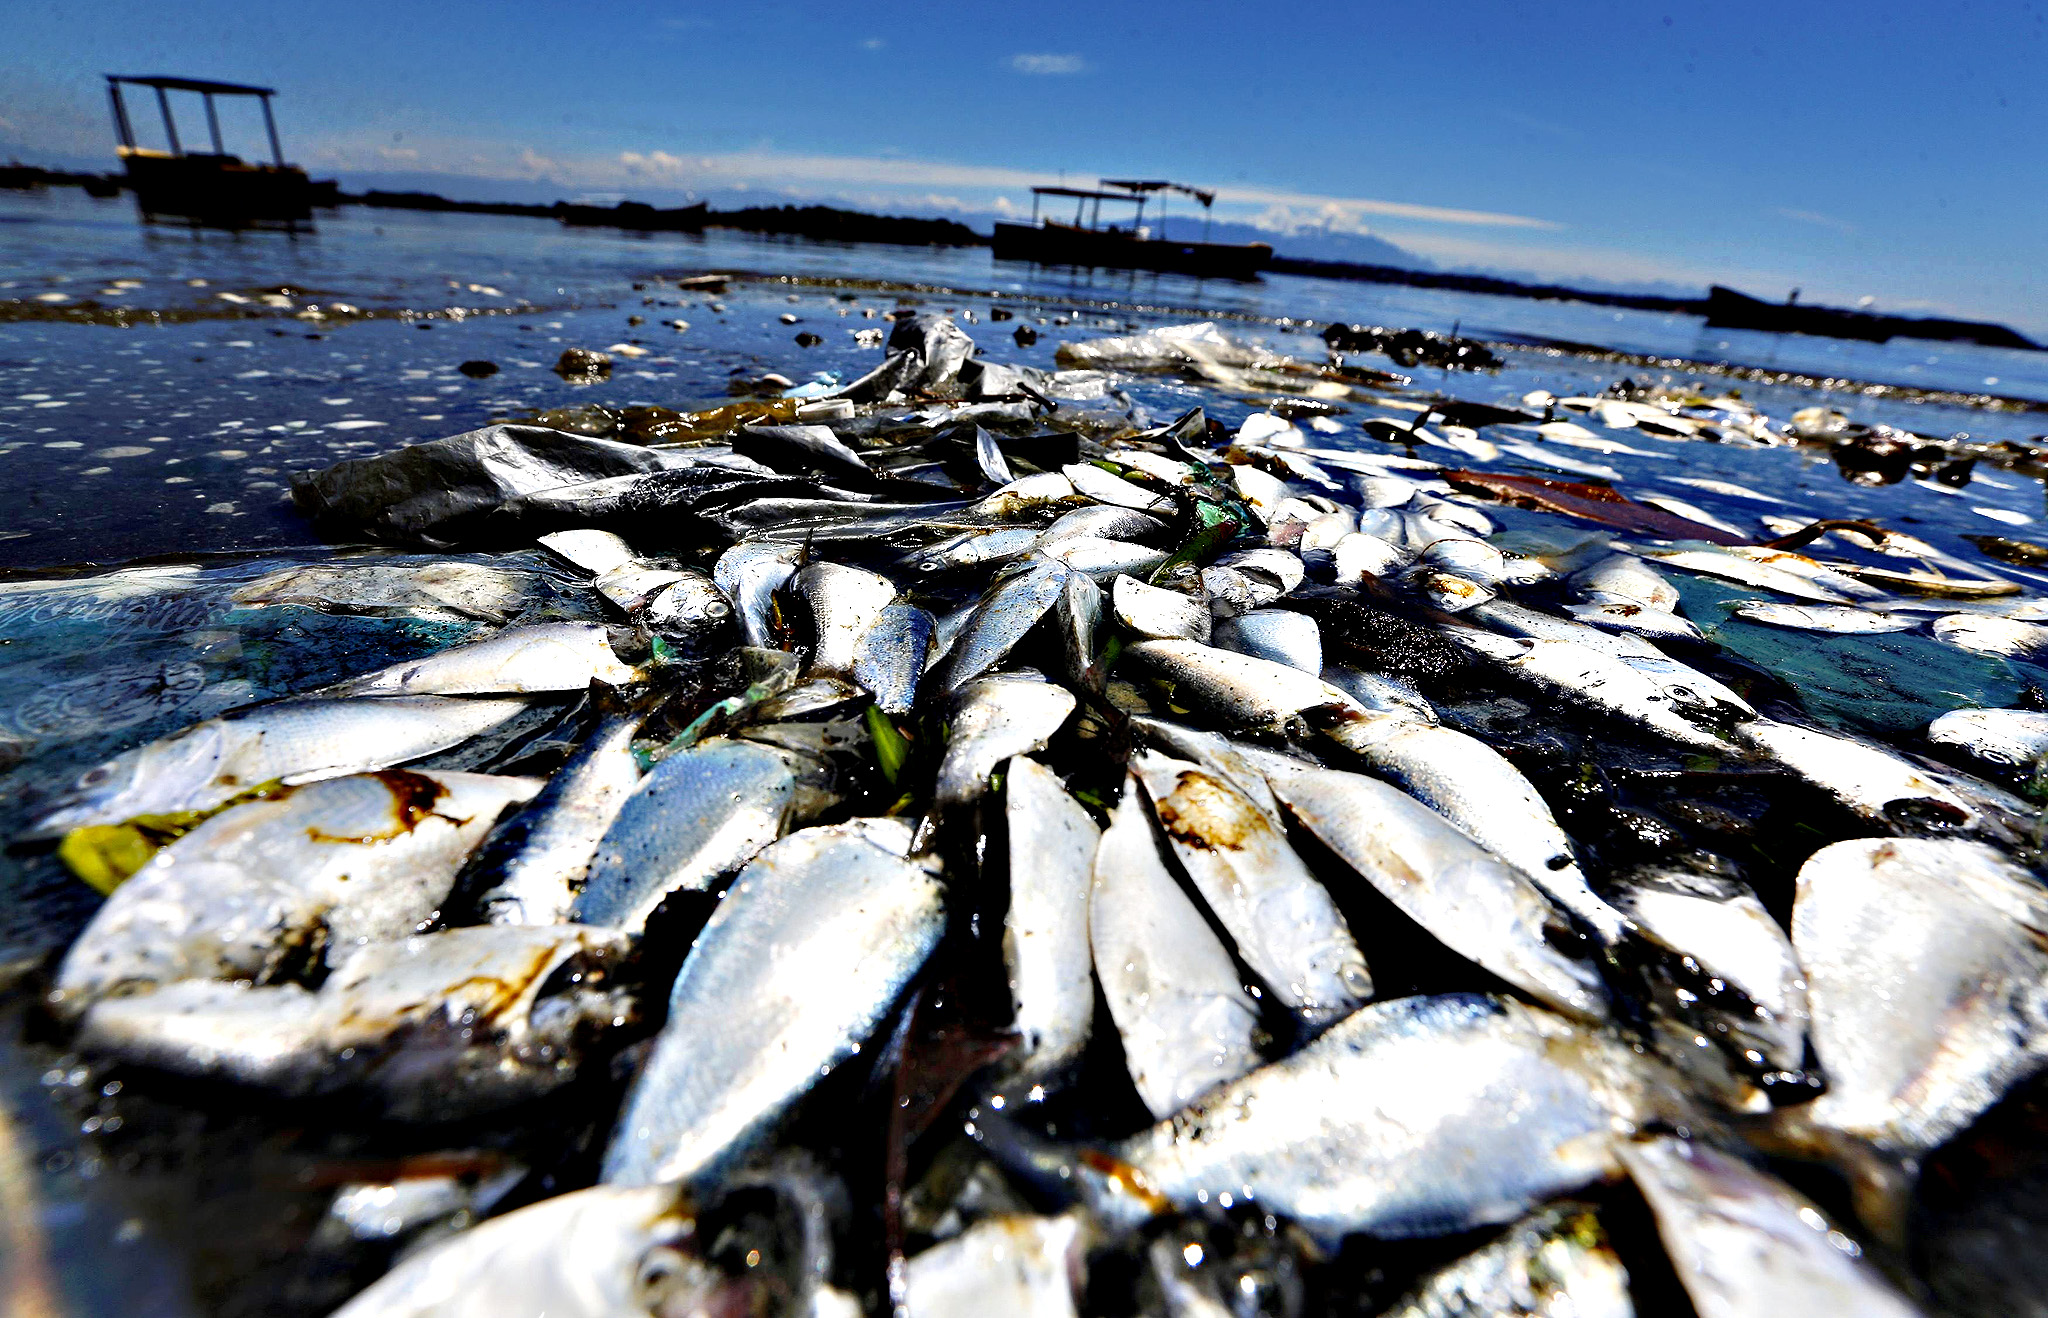 Dead fish are pictured on the banks of the Guanabara Bay in Rio de Janeiro February 24, 2015.  International Olympic Committee members meeting in Rio de Janeiro this week will understand if its waters are not completely clean for the sailing events in 2016, the state's governor said on Monday.